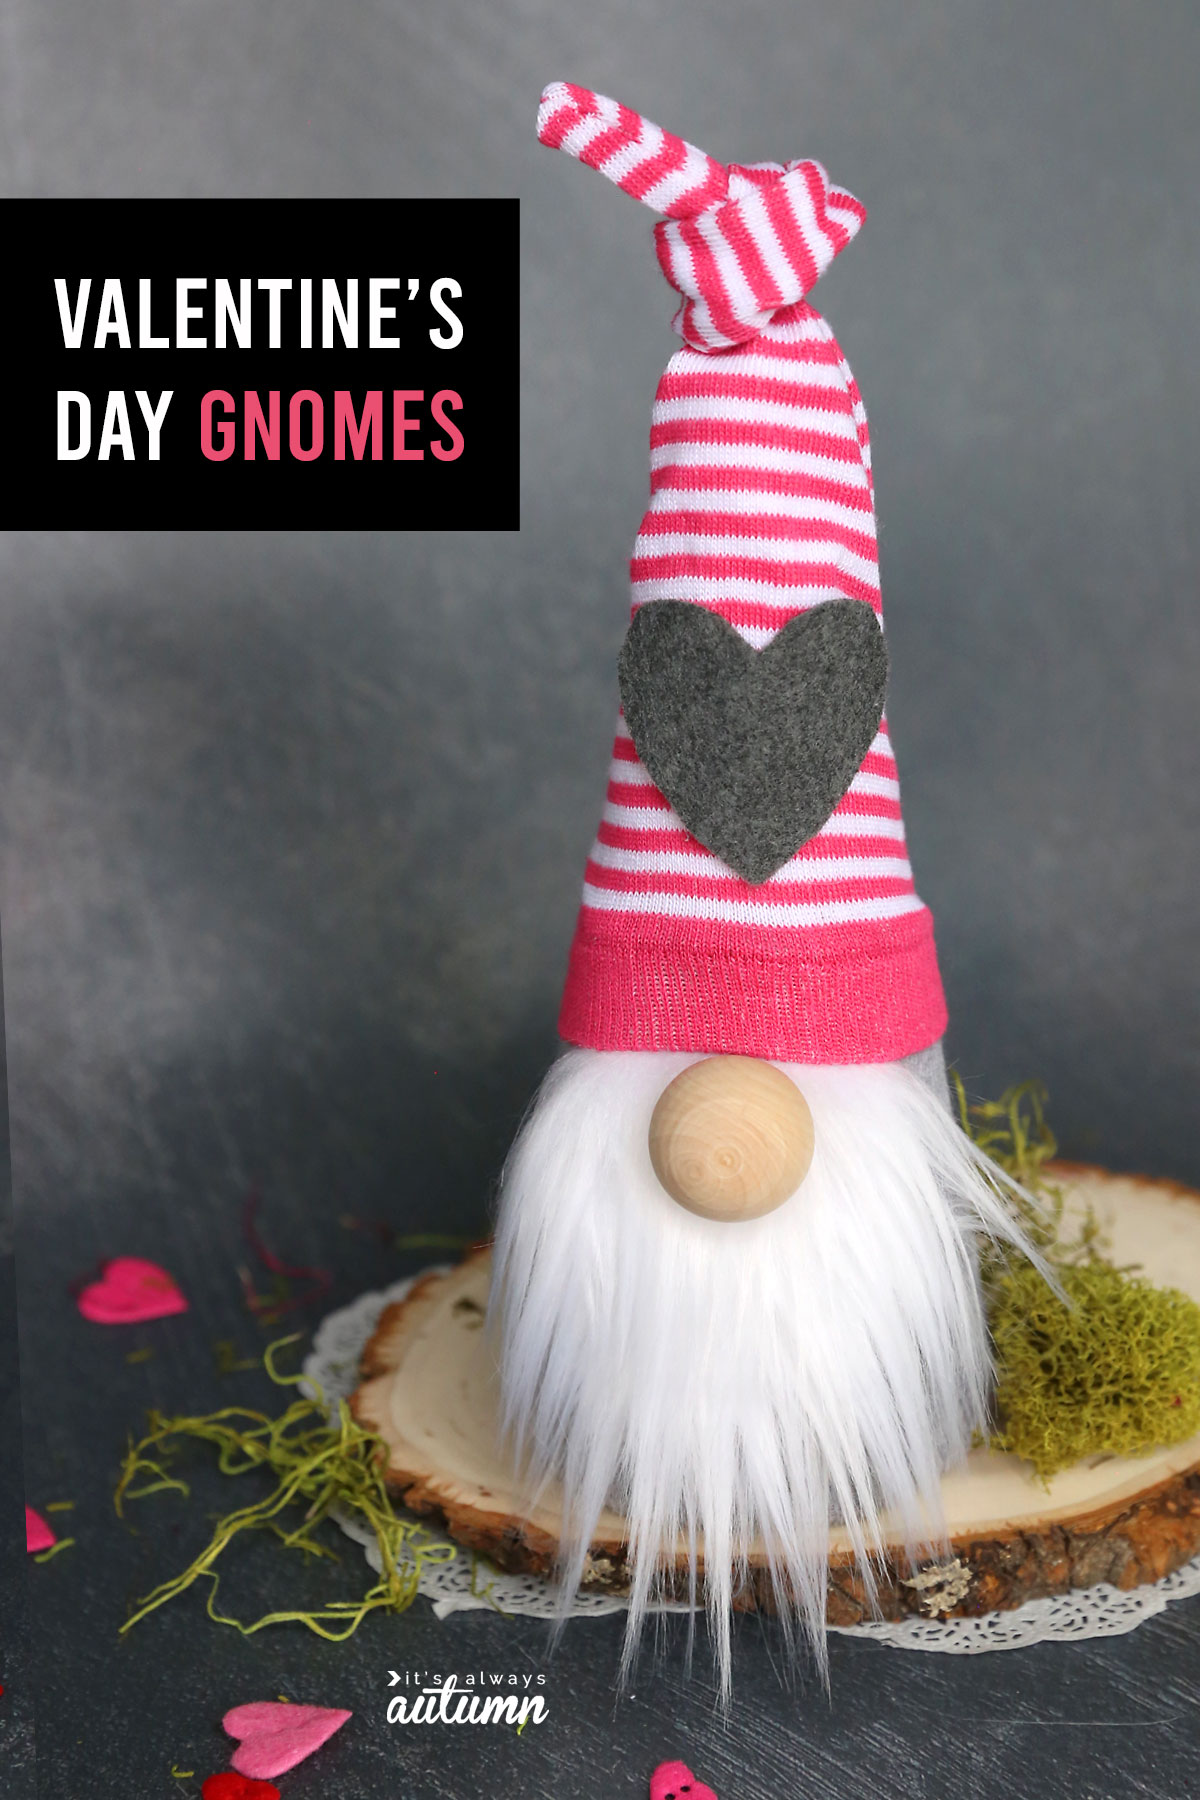 It's easy to make an adorable sock gnome for Valentine's day or any holiday!